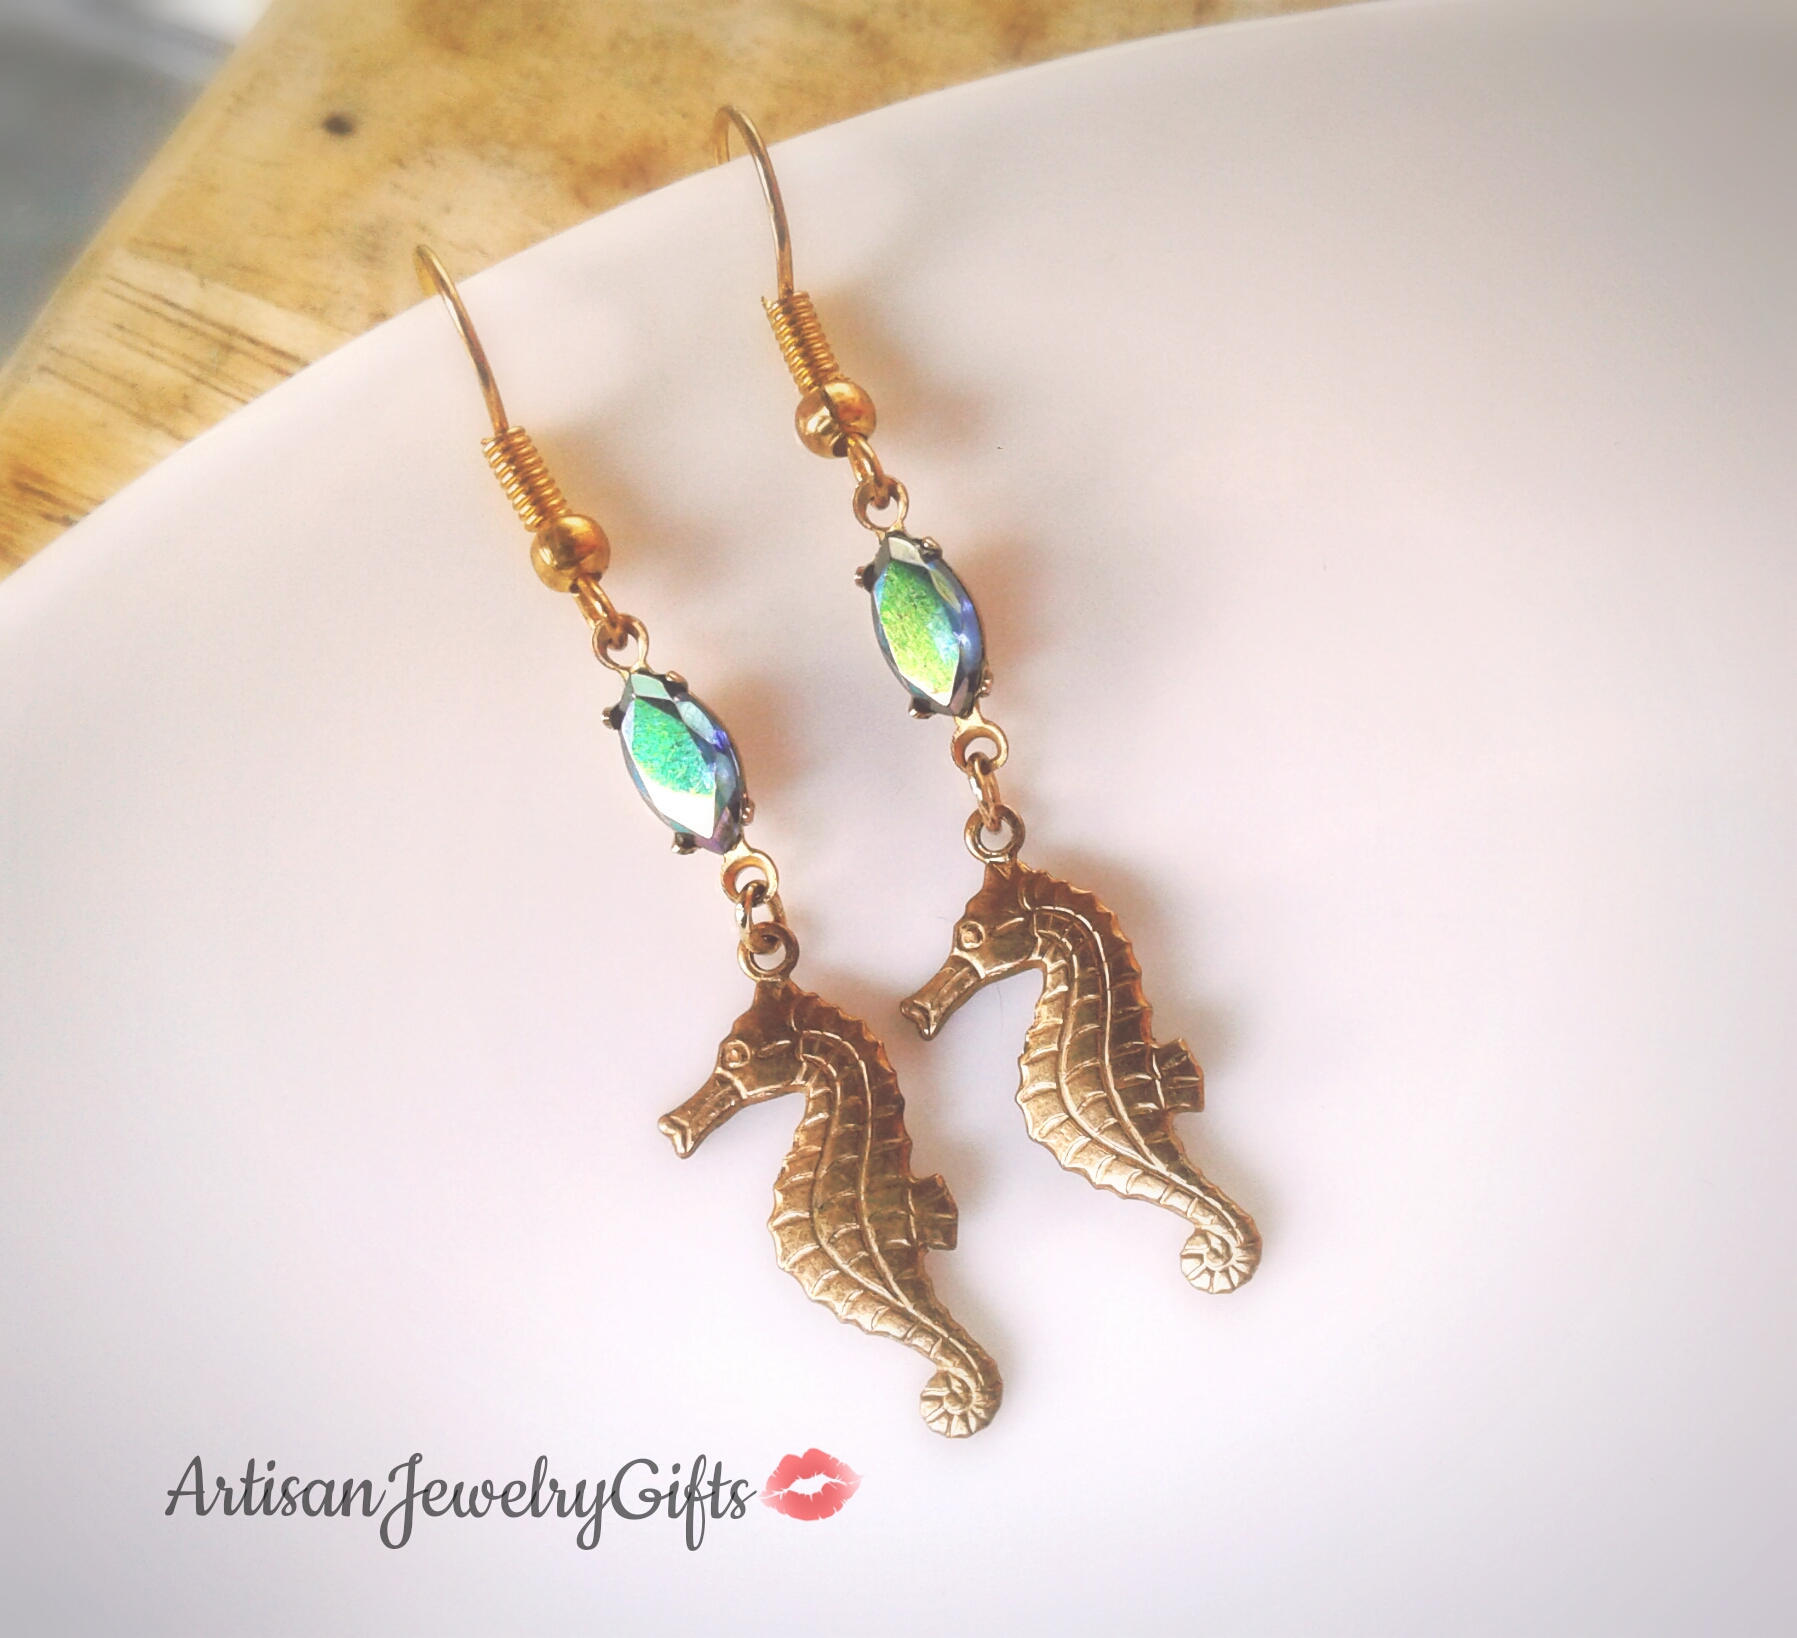 54355614e Gold Seahorse Earrings Rainbow Gem Earrings Naitical Earrings Gold Sea  Horse Earrings Rare Antique Gem Earrings